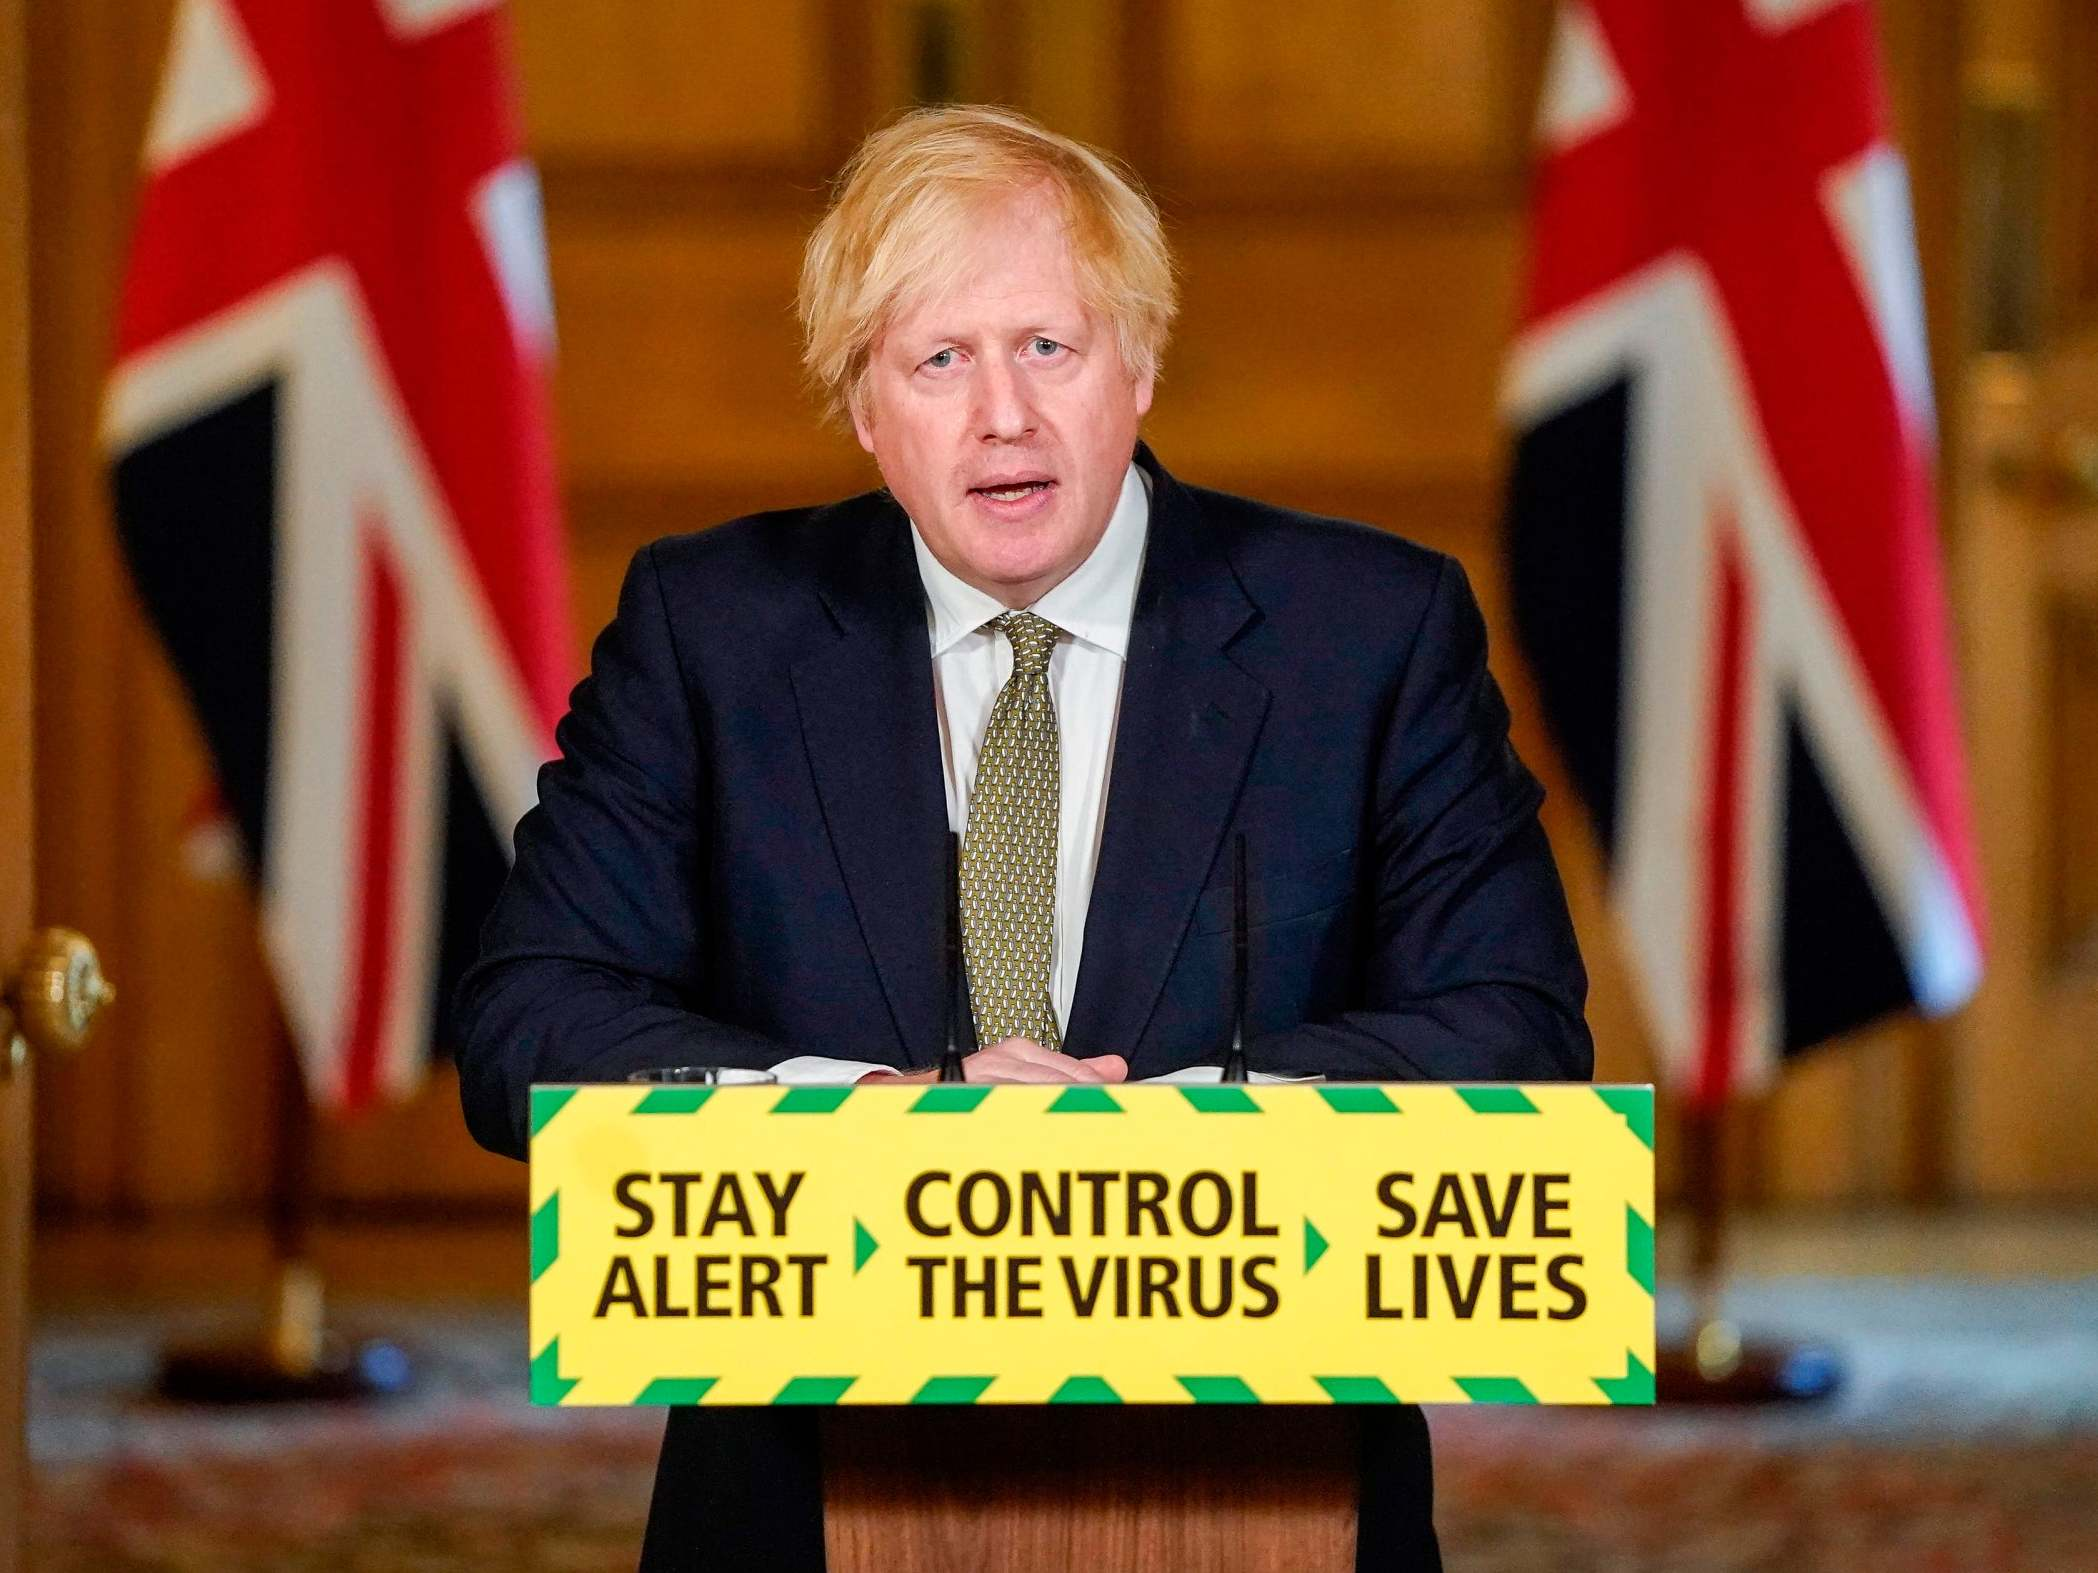 Boris Johnson announces schools will reopen on 1 June as UK enters phase two of lockdown exit